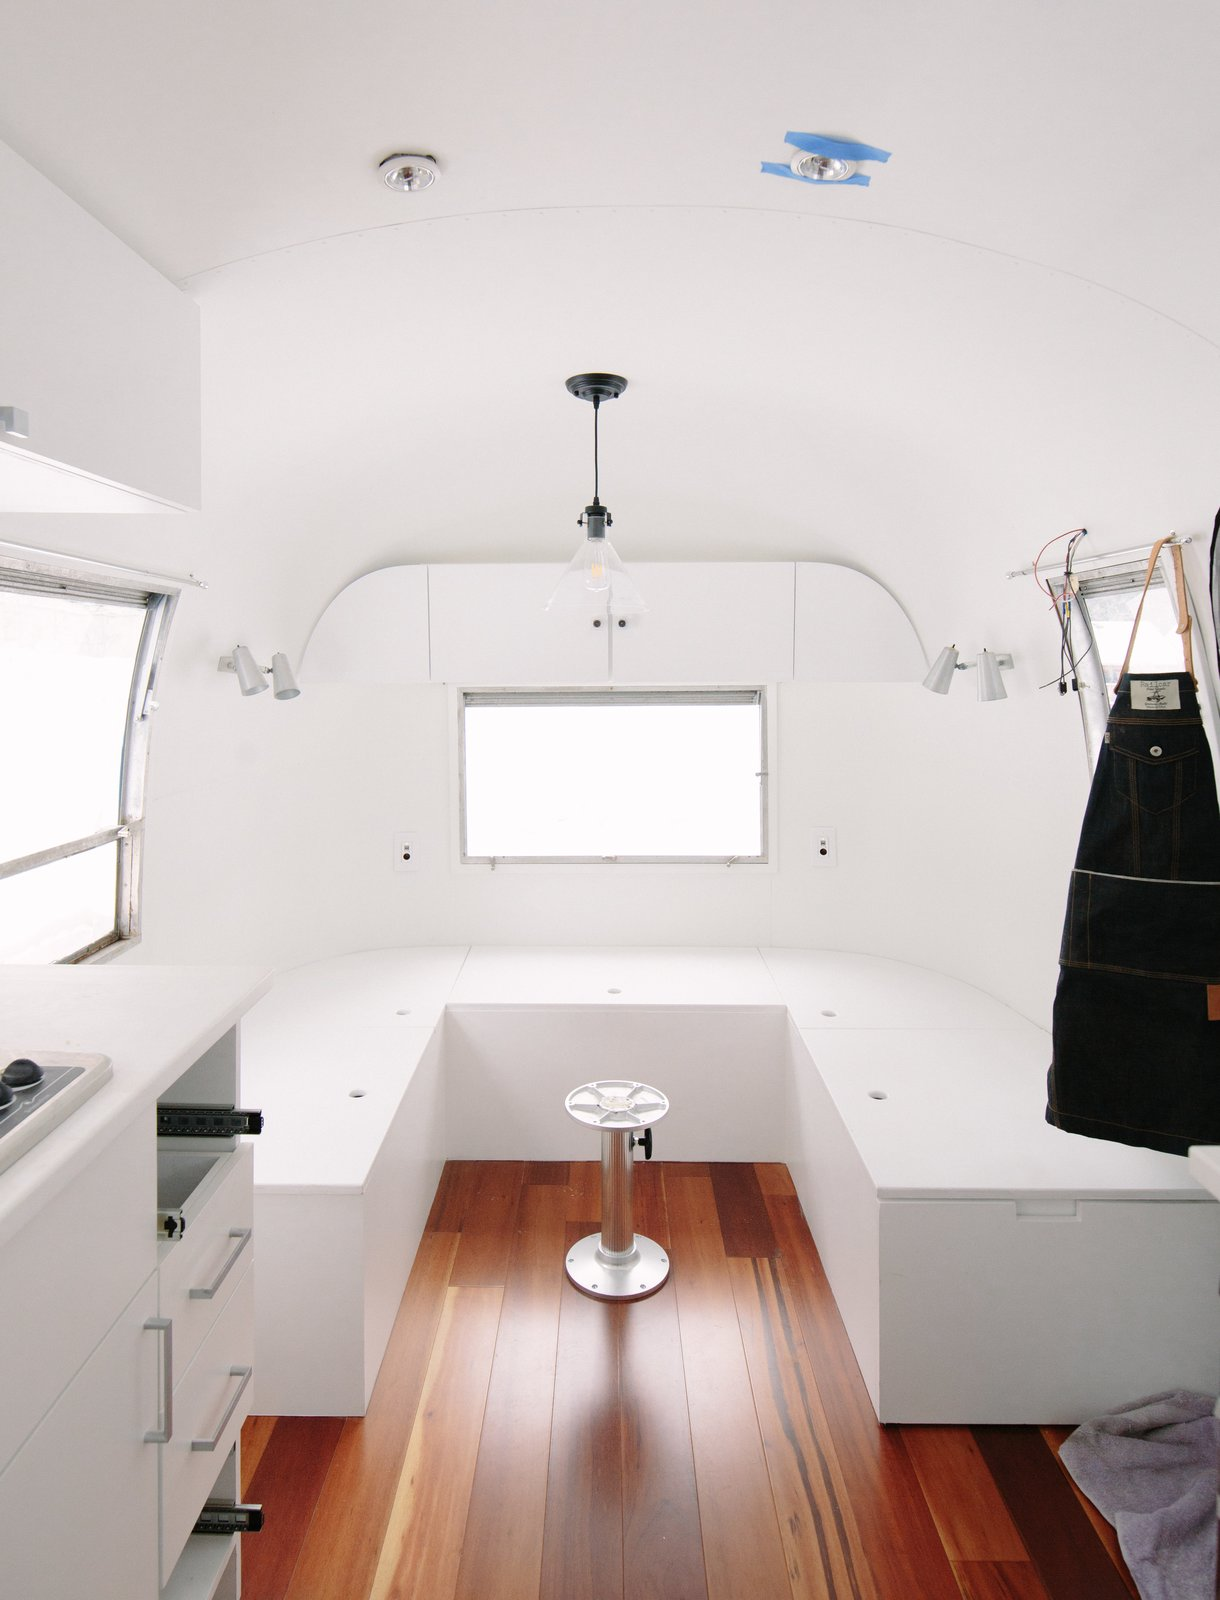 Photo 4 of 25 in See How an Oregon Couple Renovated Their 1966 Airstream